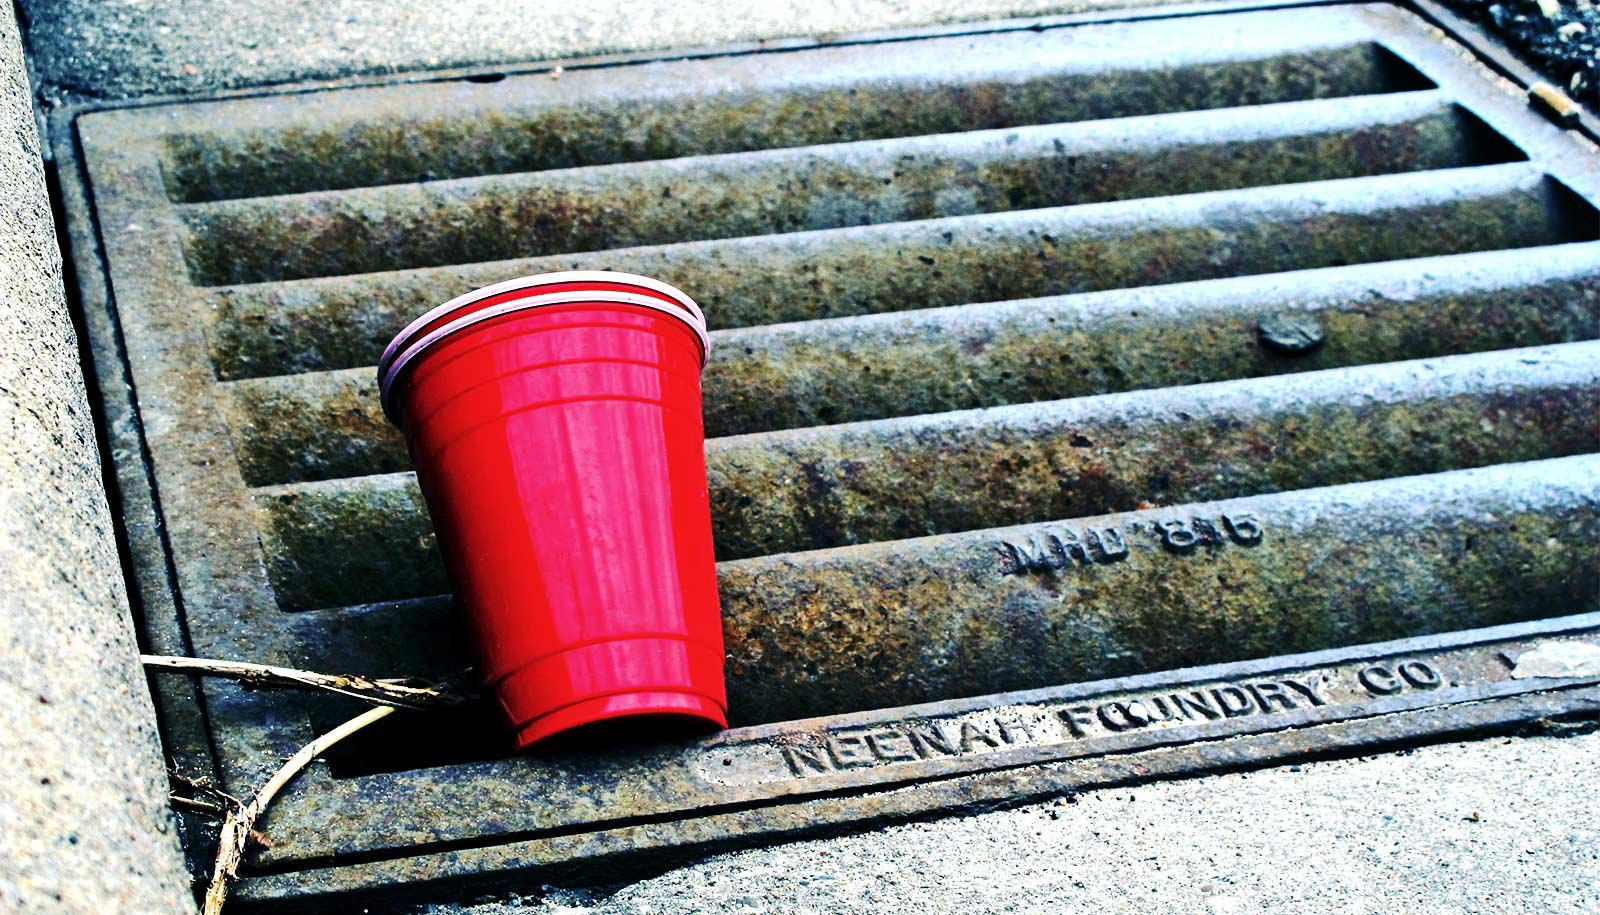 A red solo cup sits on a sewer drain on the street